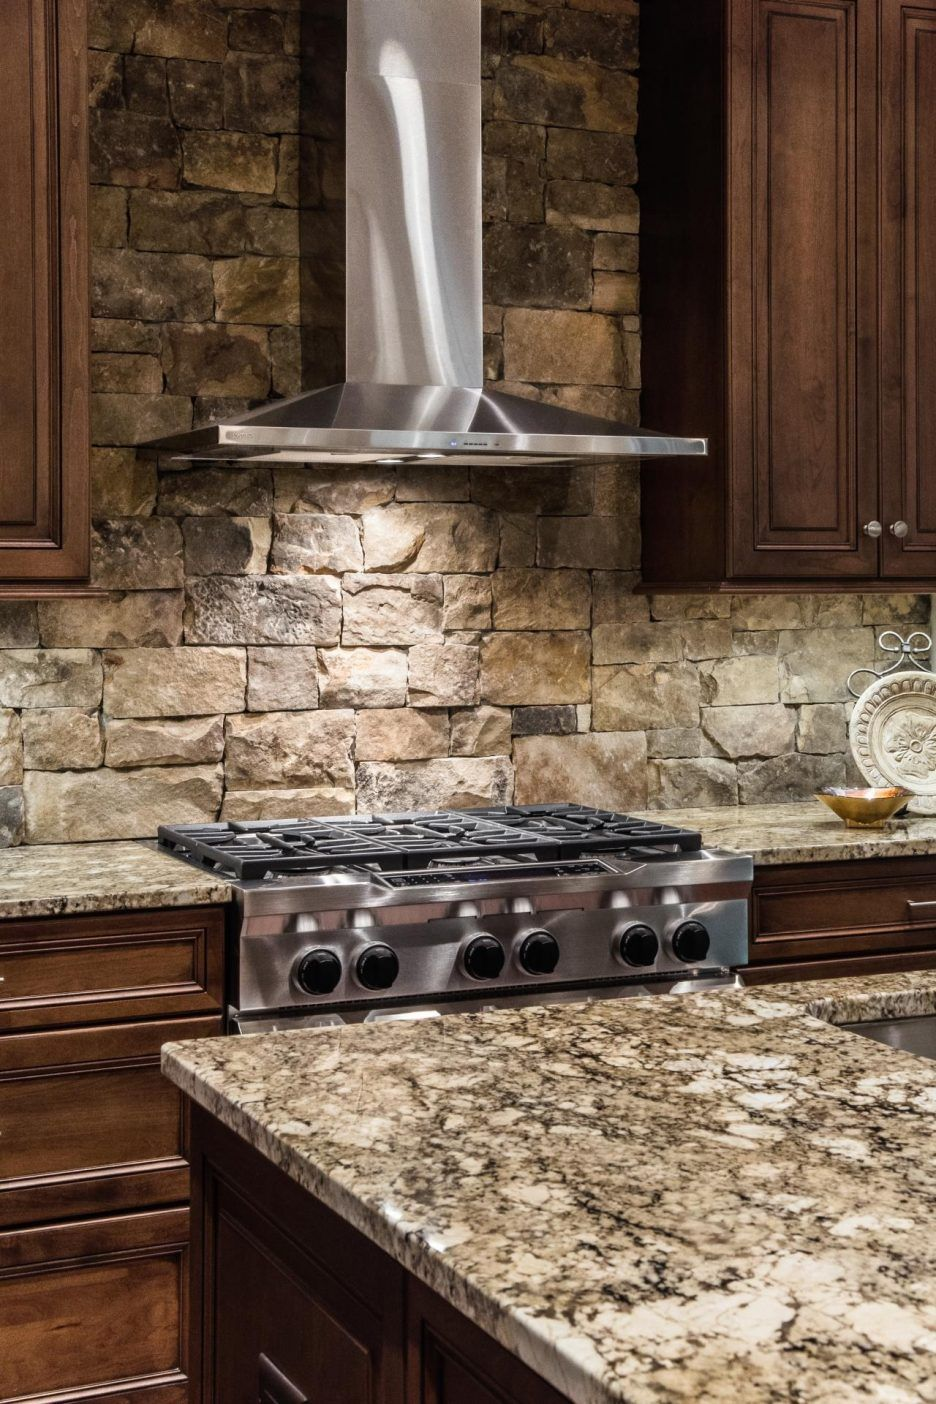 Kitchen Backslash Grey Backsplash Tile Large Stone Backsplash